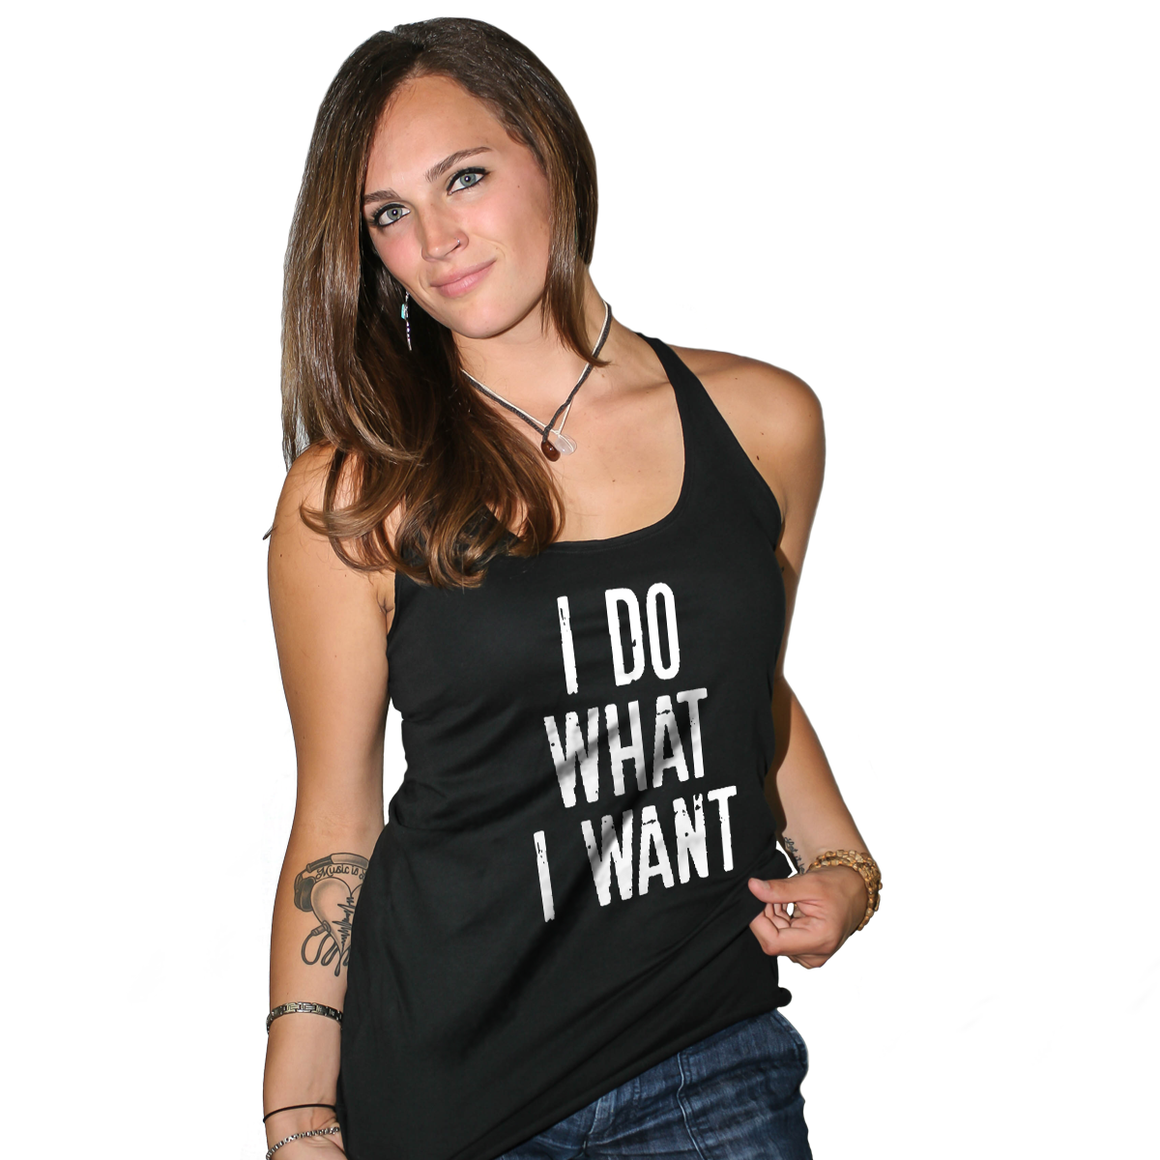 I Do What I Want Women's Racerback Tank Top